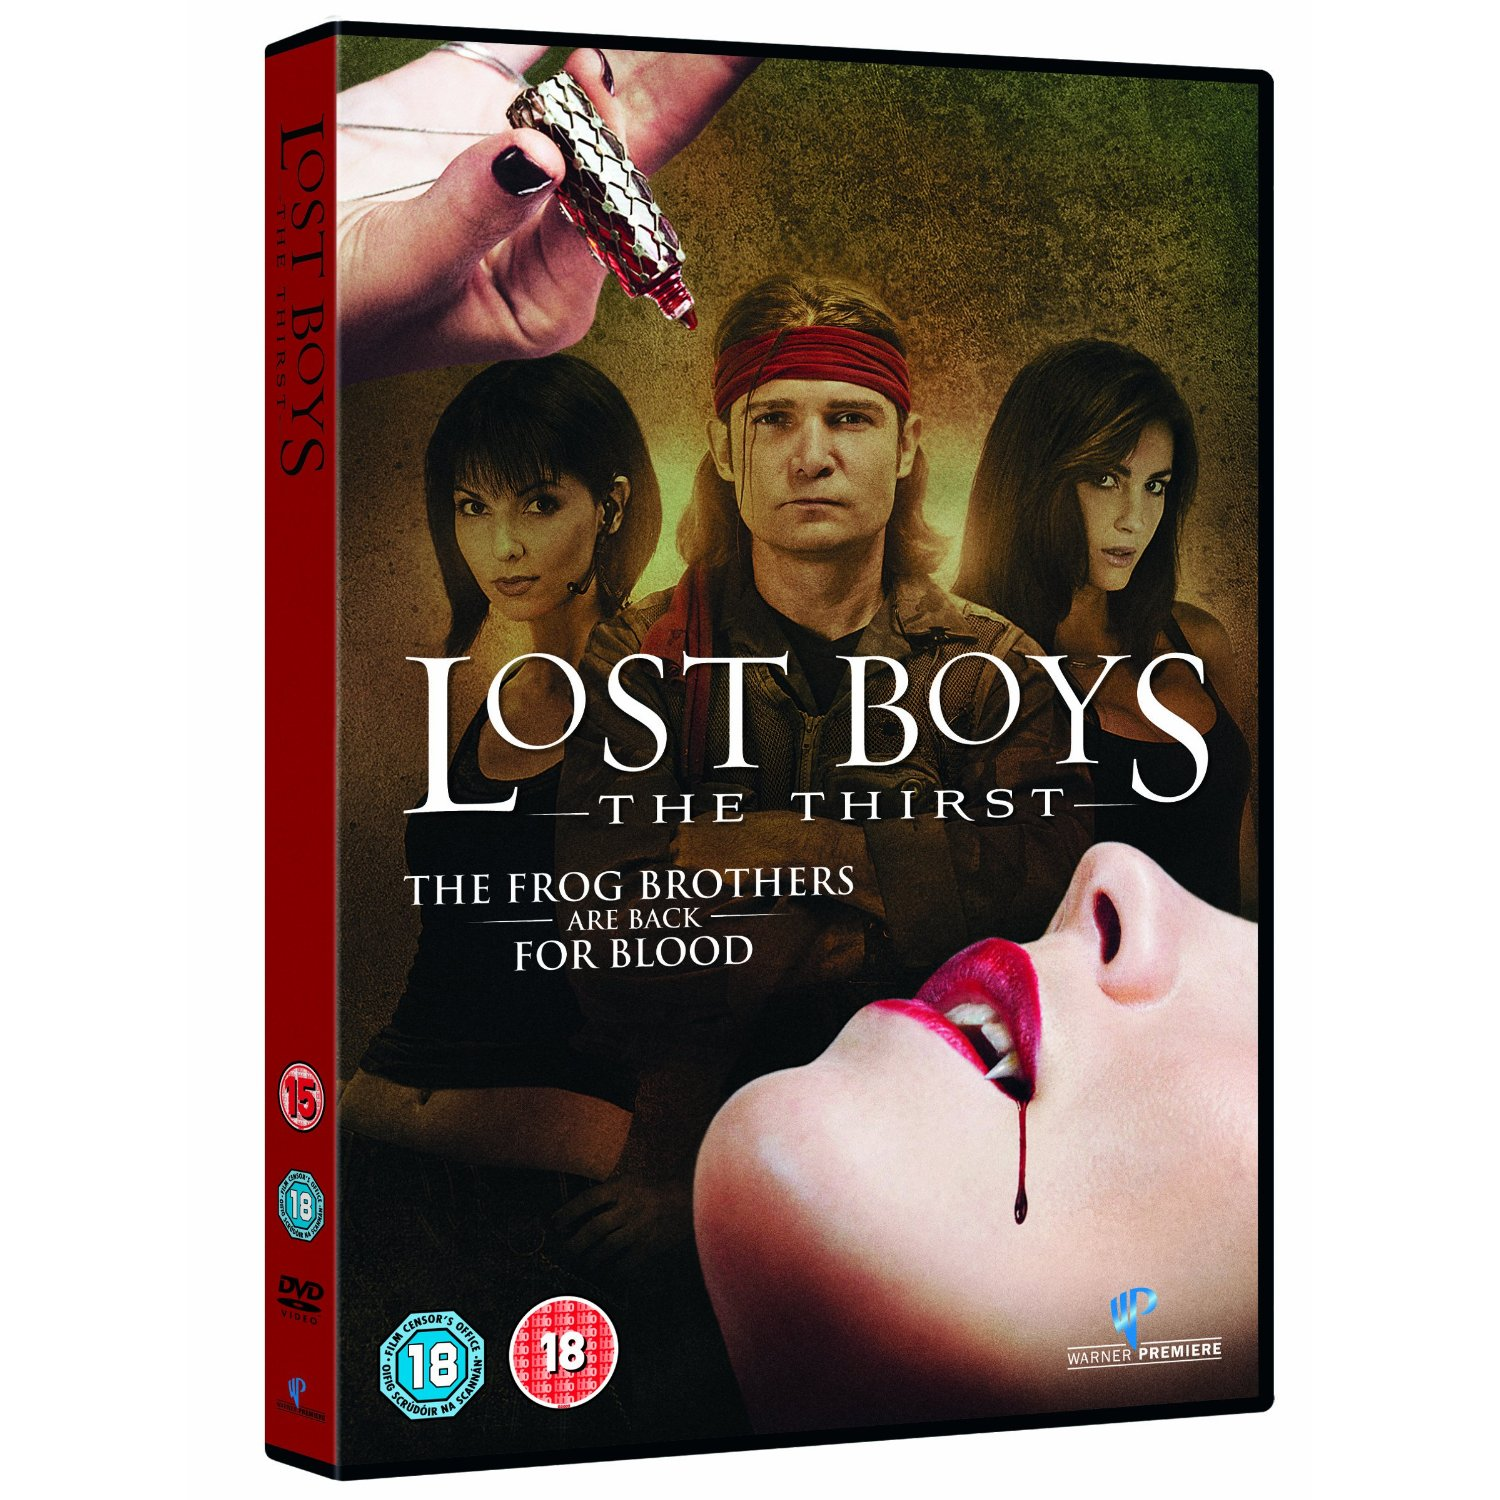 Lost Boys 3 The Thirst DVD Brand New Sealed Movie Region 2 Film Free UK P&P